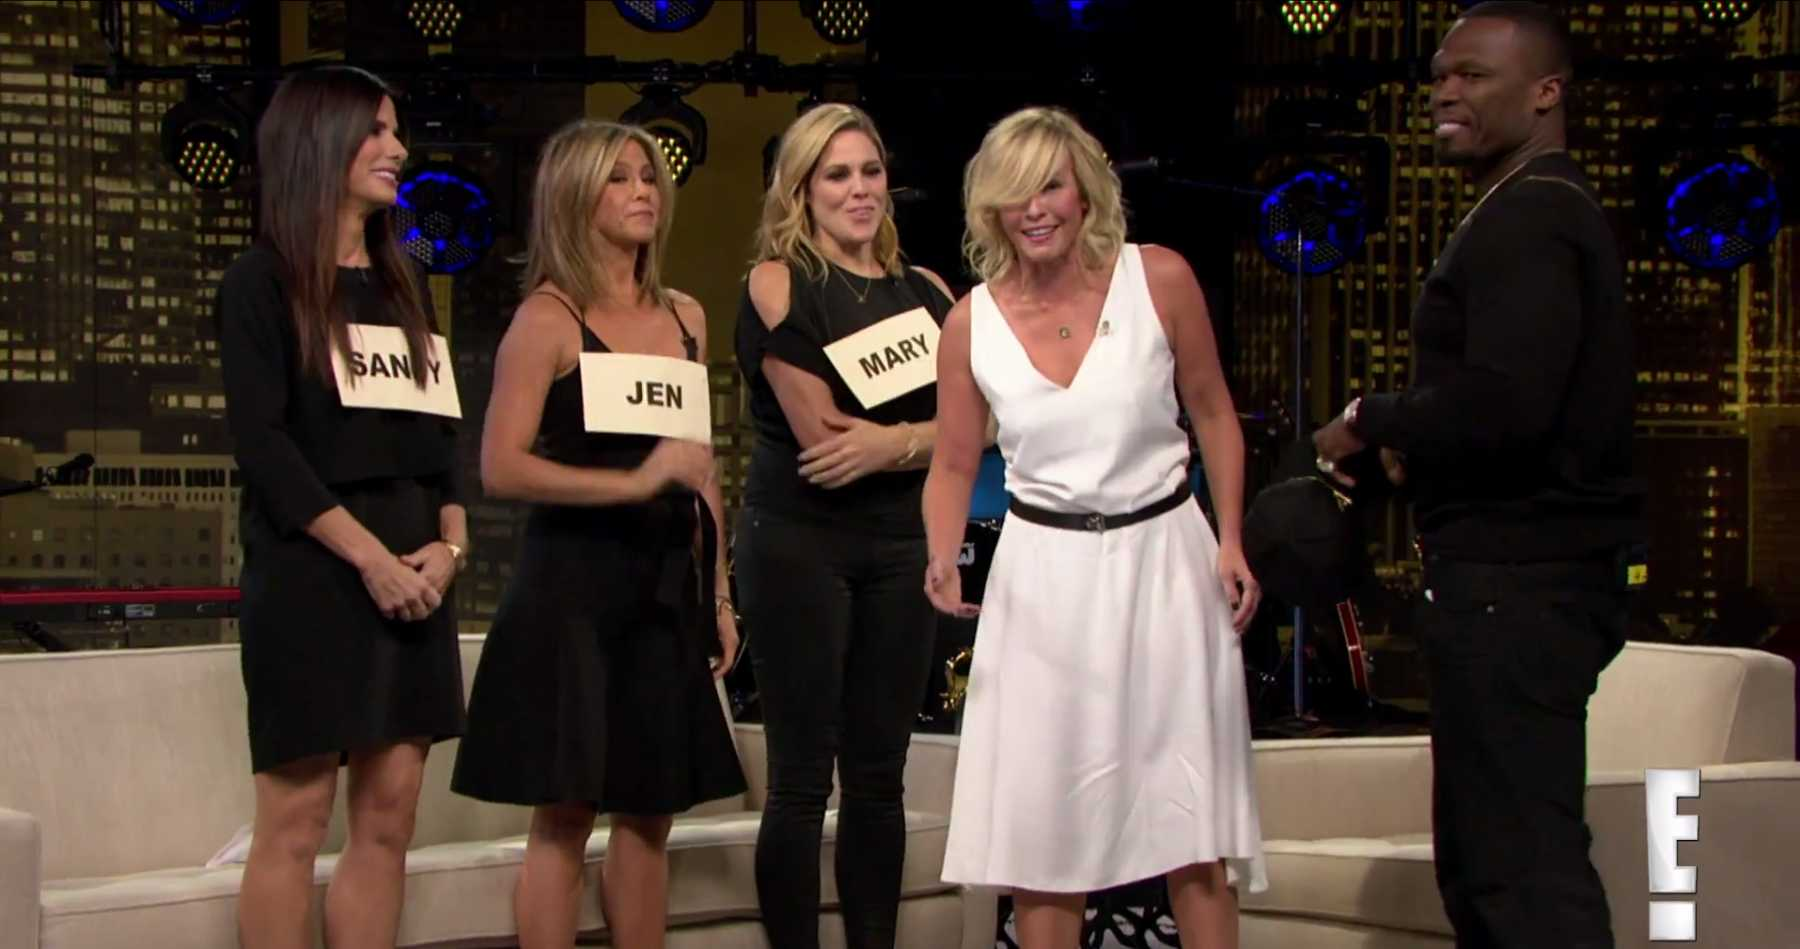 'Chelsea Lately' Signs Off With The Help Of Some Famous Friends | Chelsea Lately